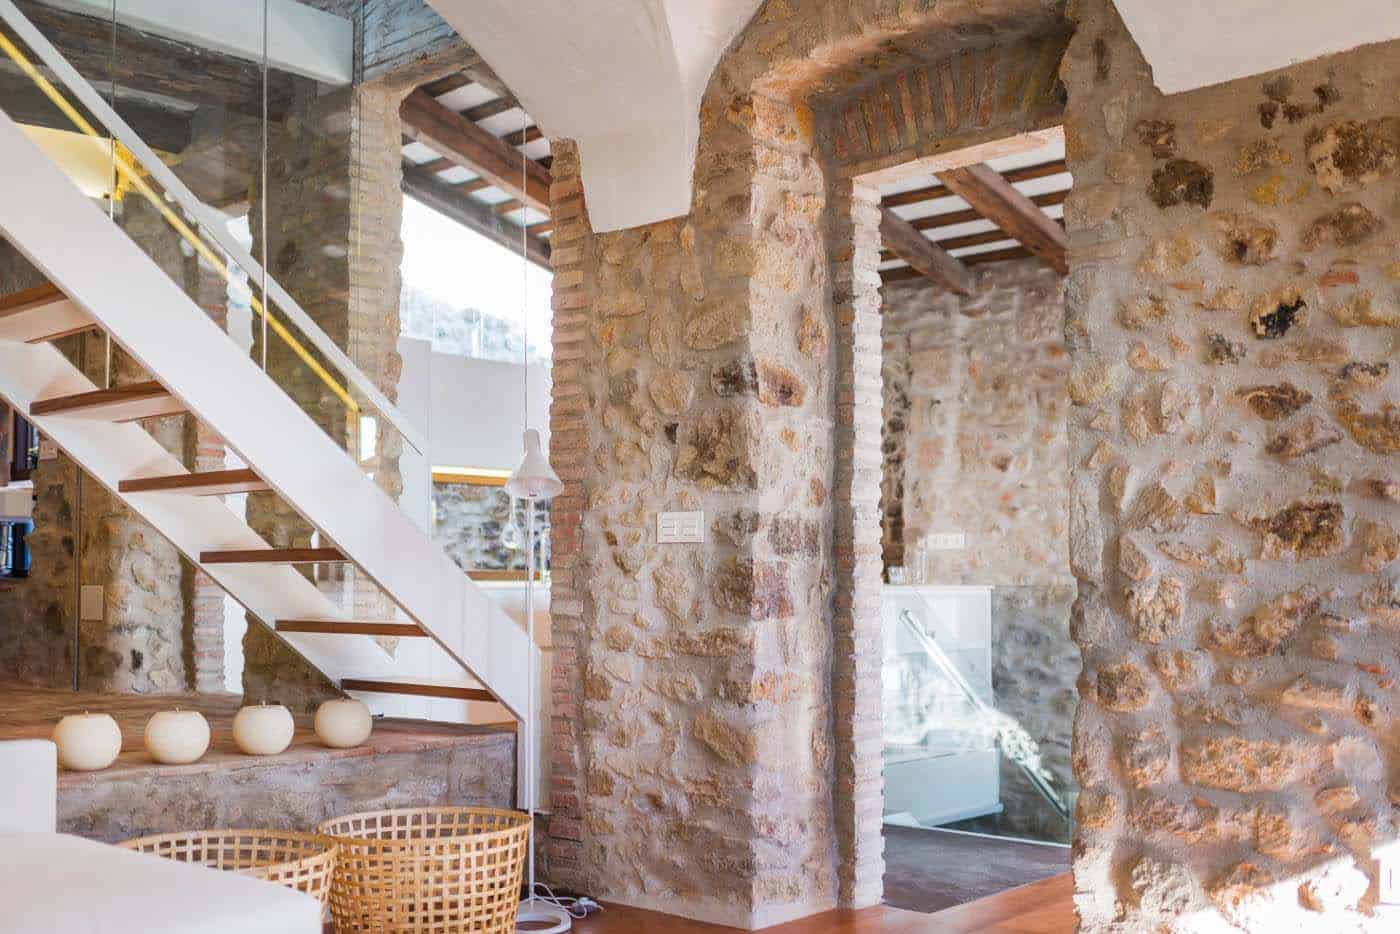 Historic Stone Dwelling-Gloria Duran Torrellas-10-1 Kindesign